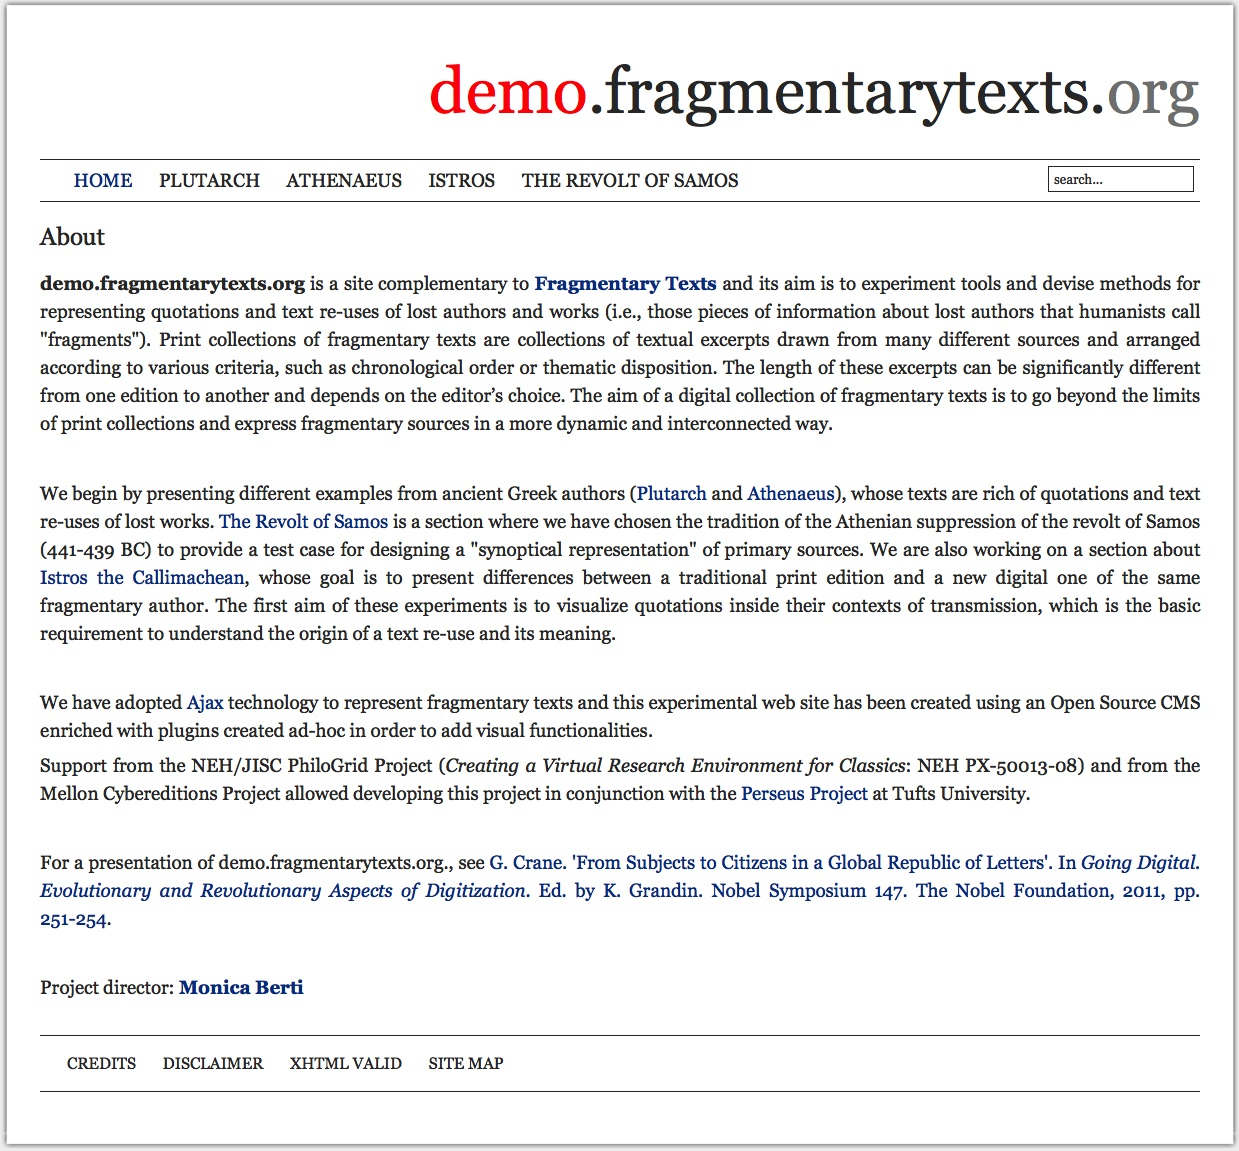 demo.fragmentarytexts.org